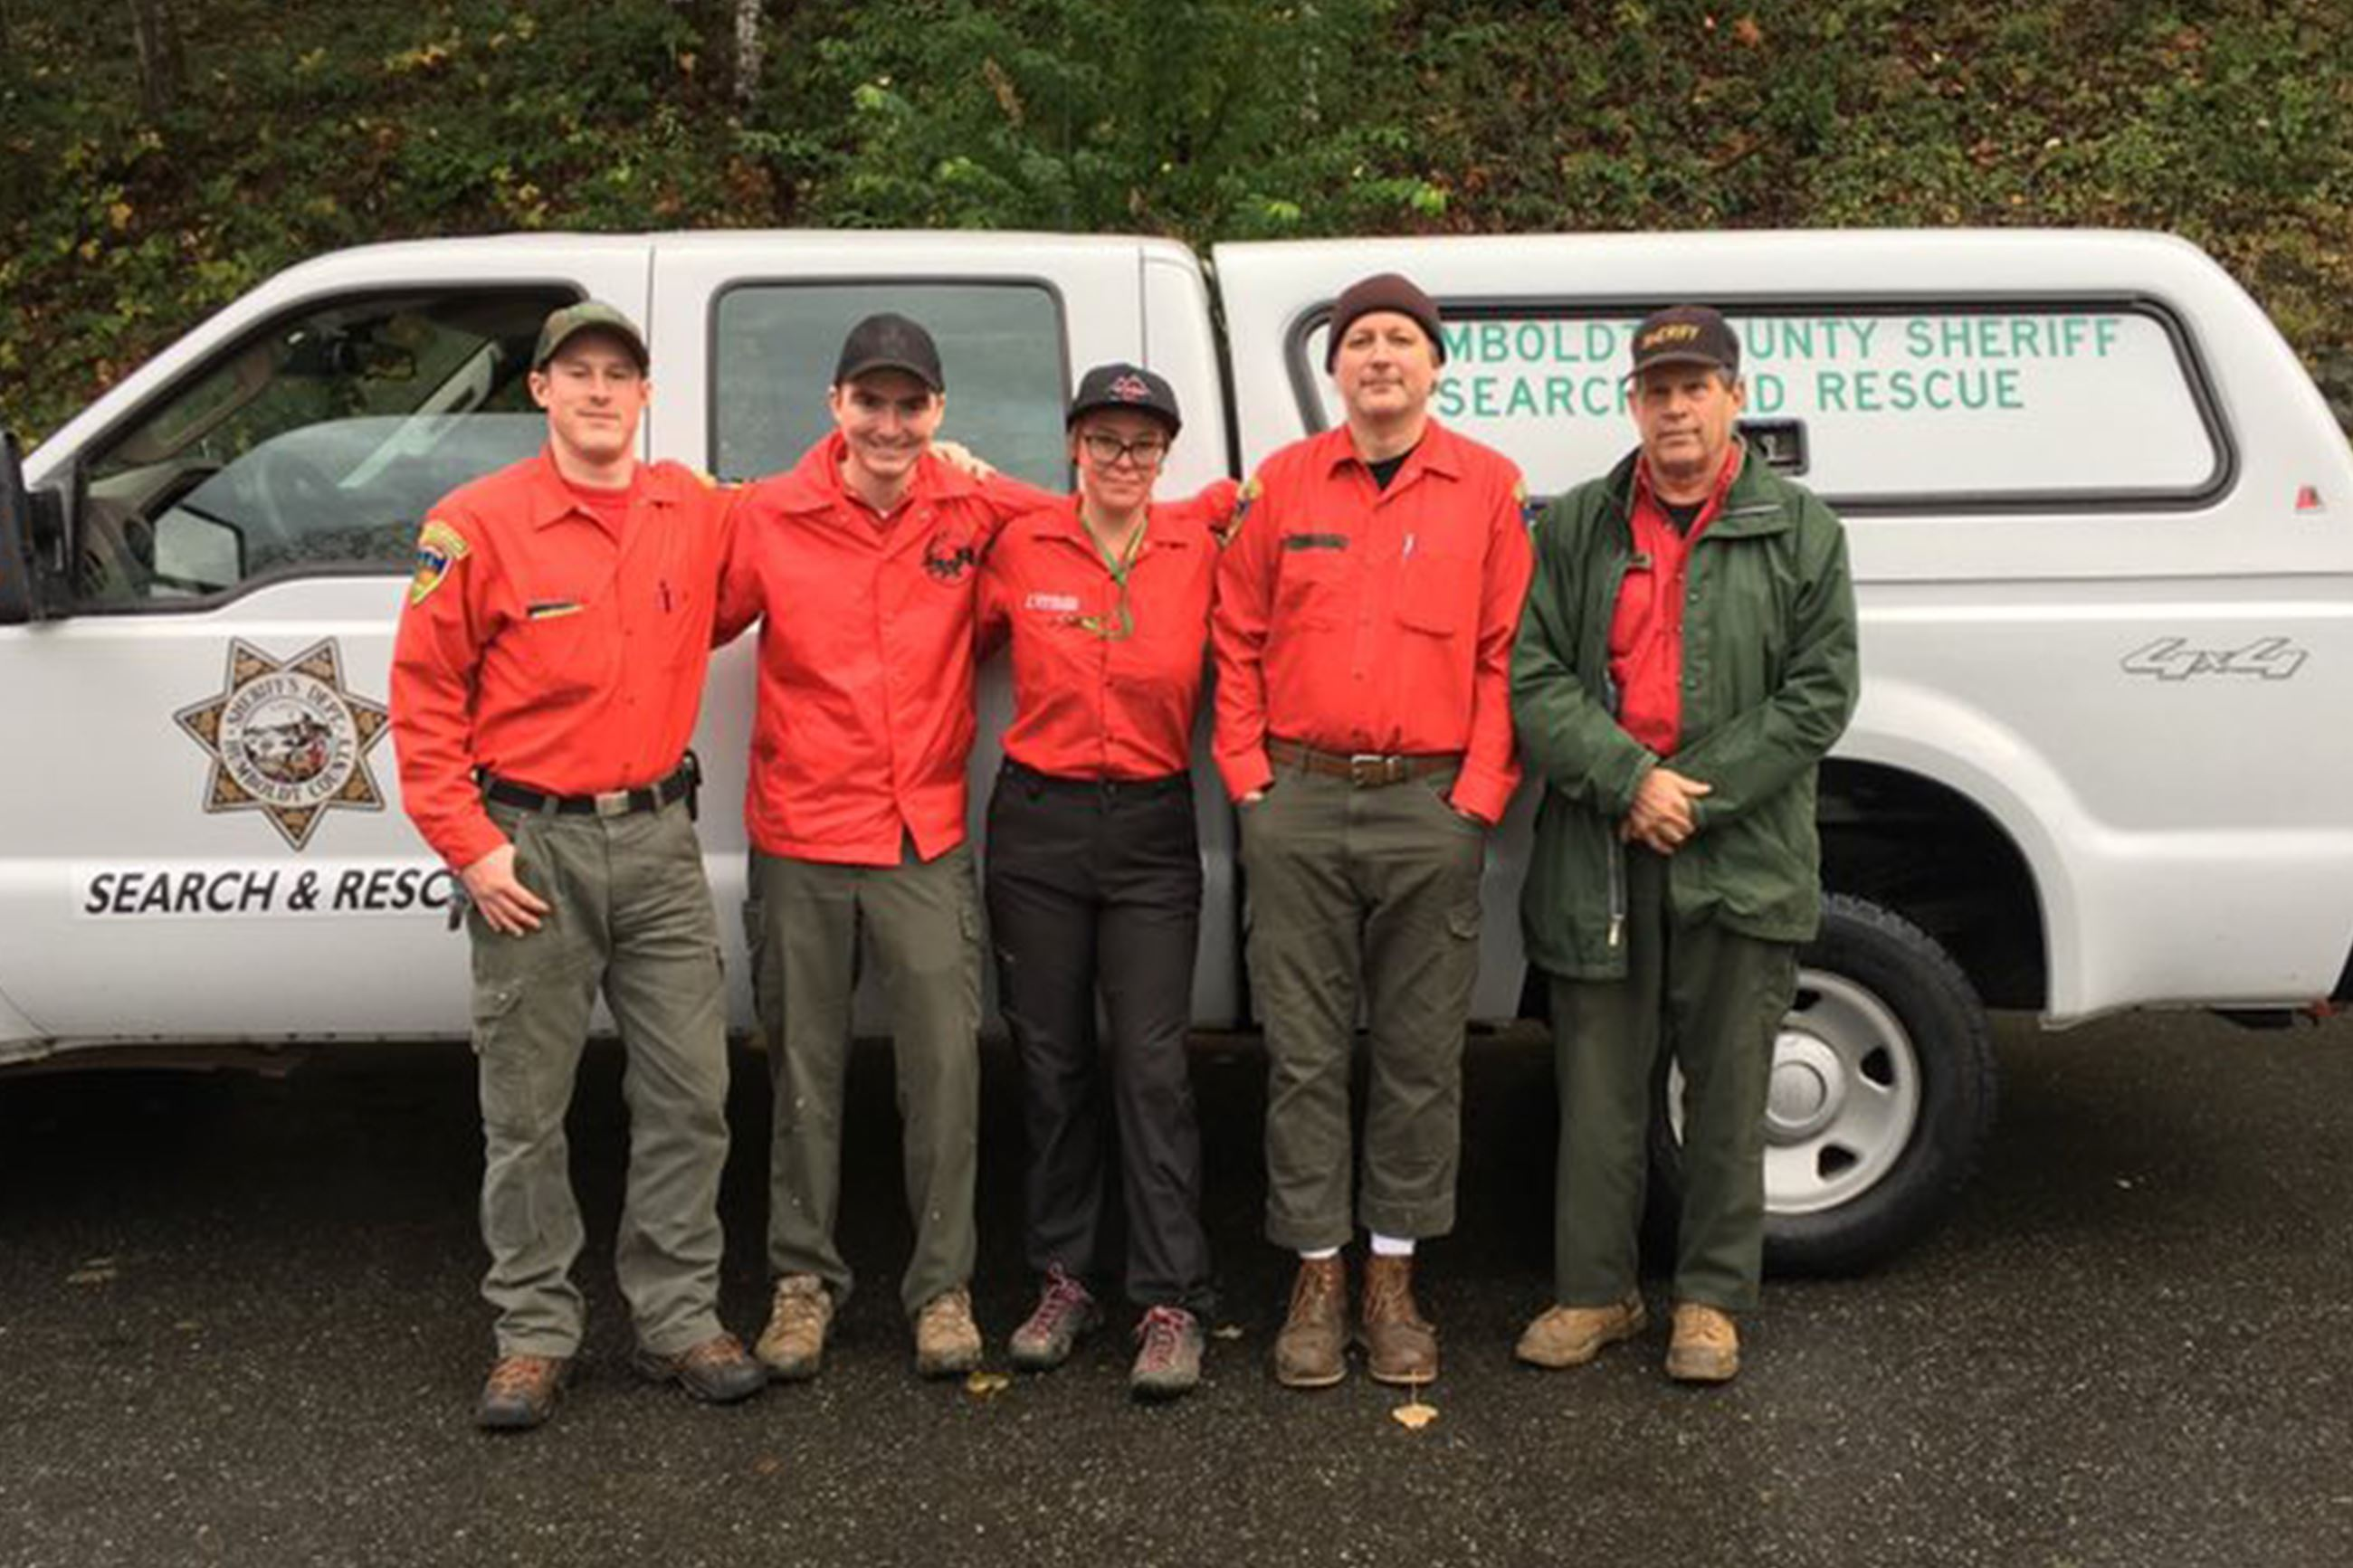 Five search and rescue members stand in front of a truck